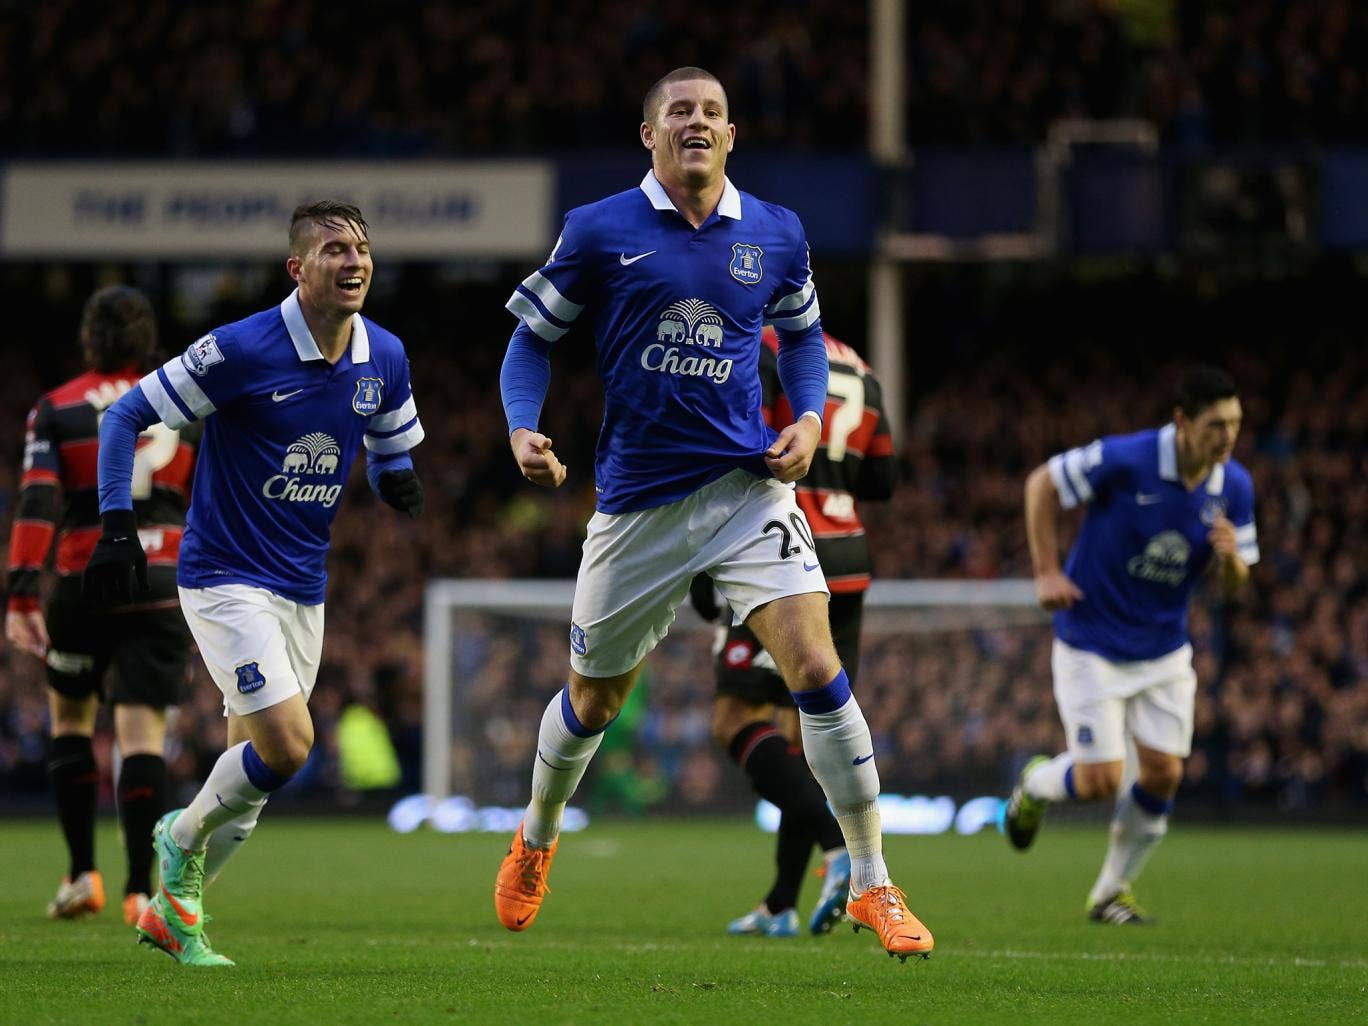 Ross Barkley has suffered a possible broken toe after missing Everton's 2-0 win over Norwich